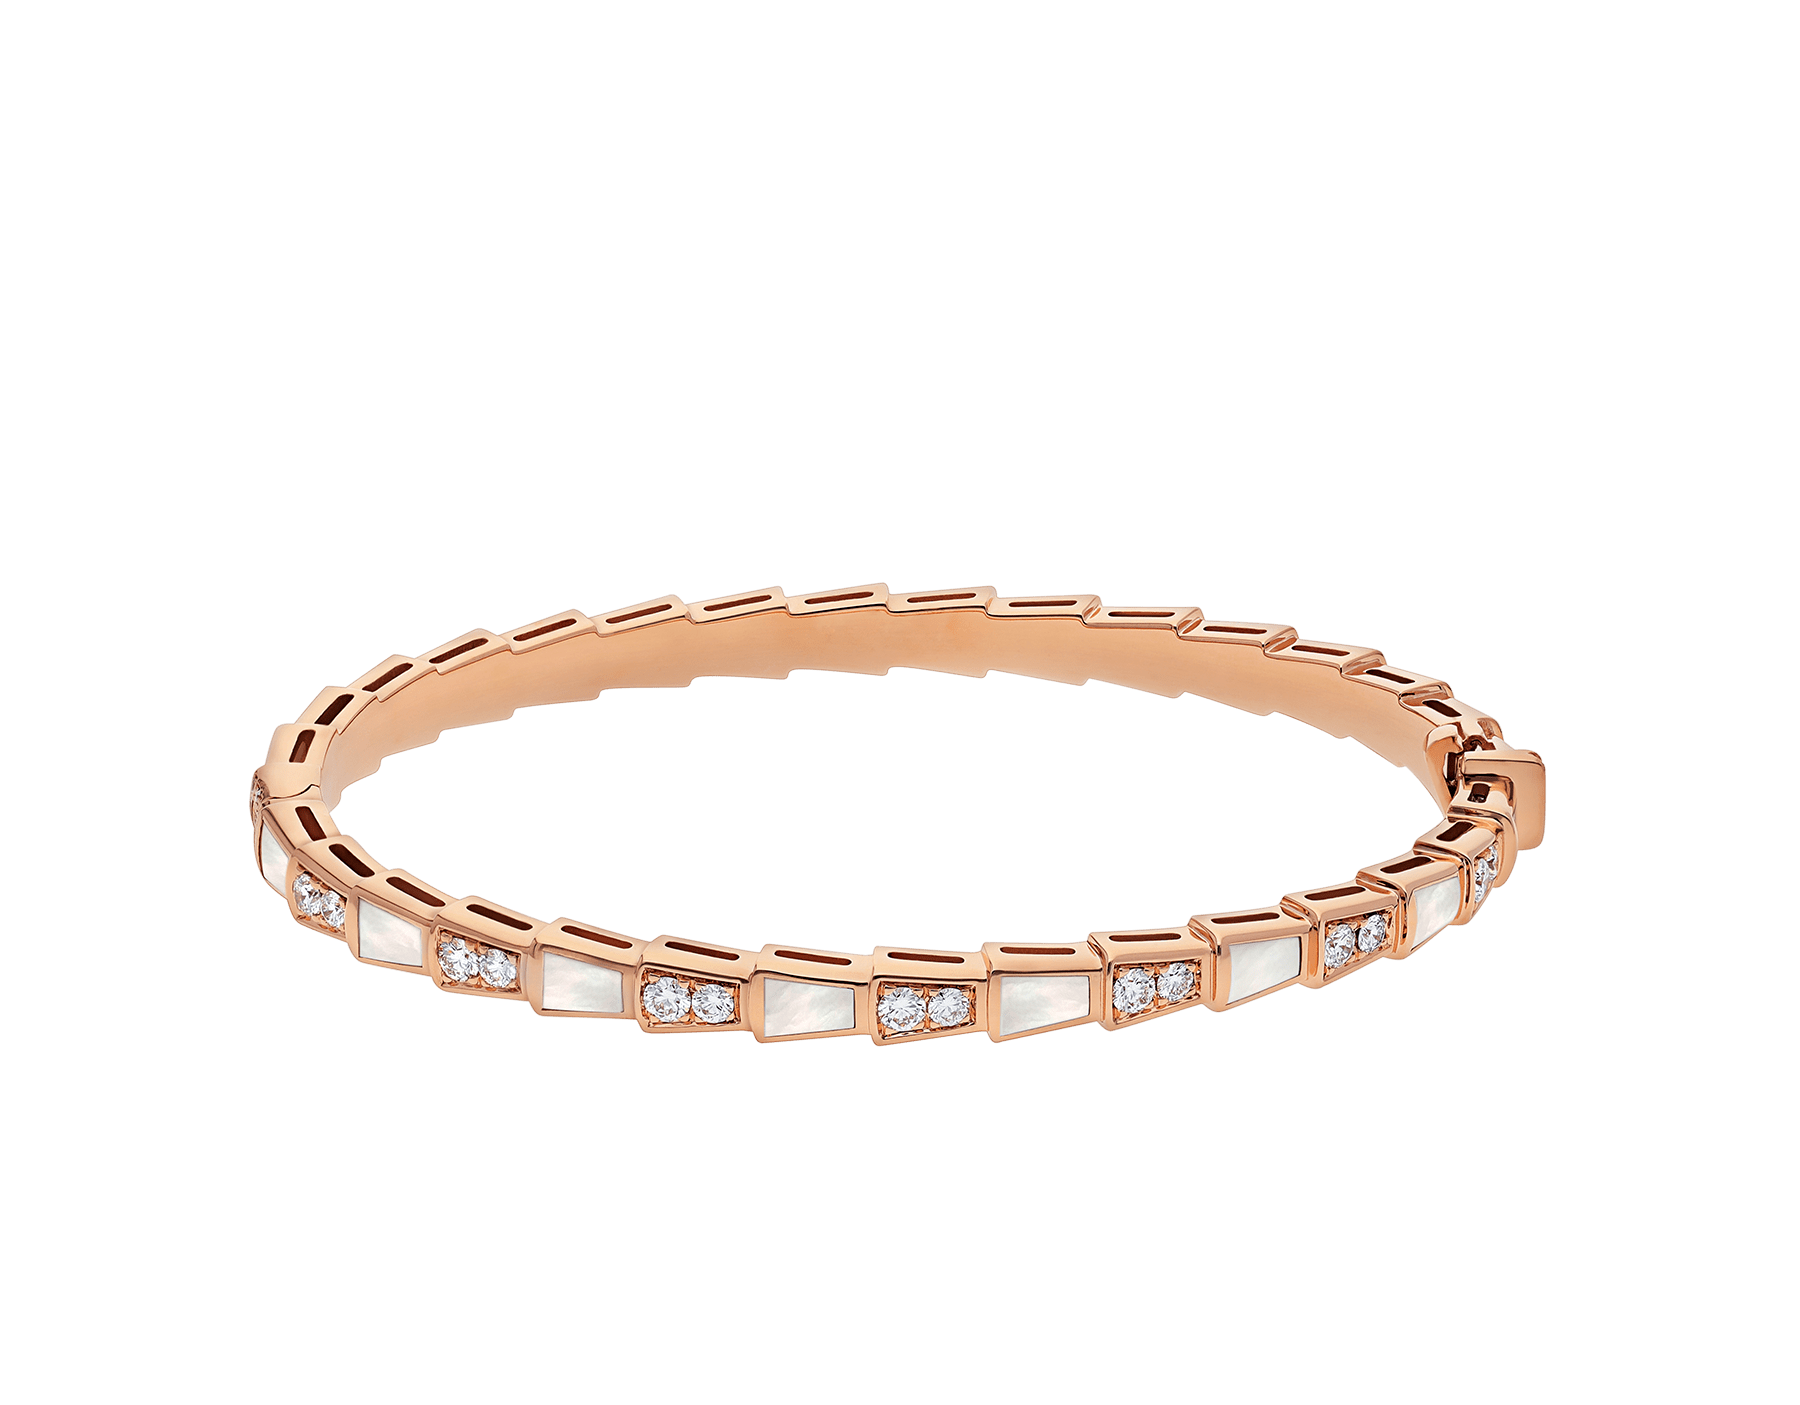 Serpenti 18 kt rose gold bracelet set with mother-of-pearl elements and pavé diamonds BR858356 image 2